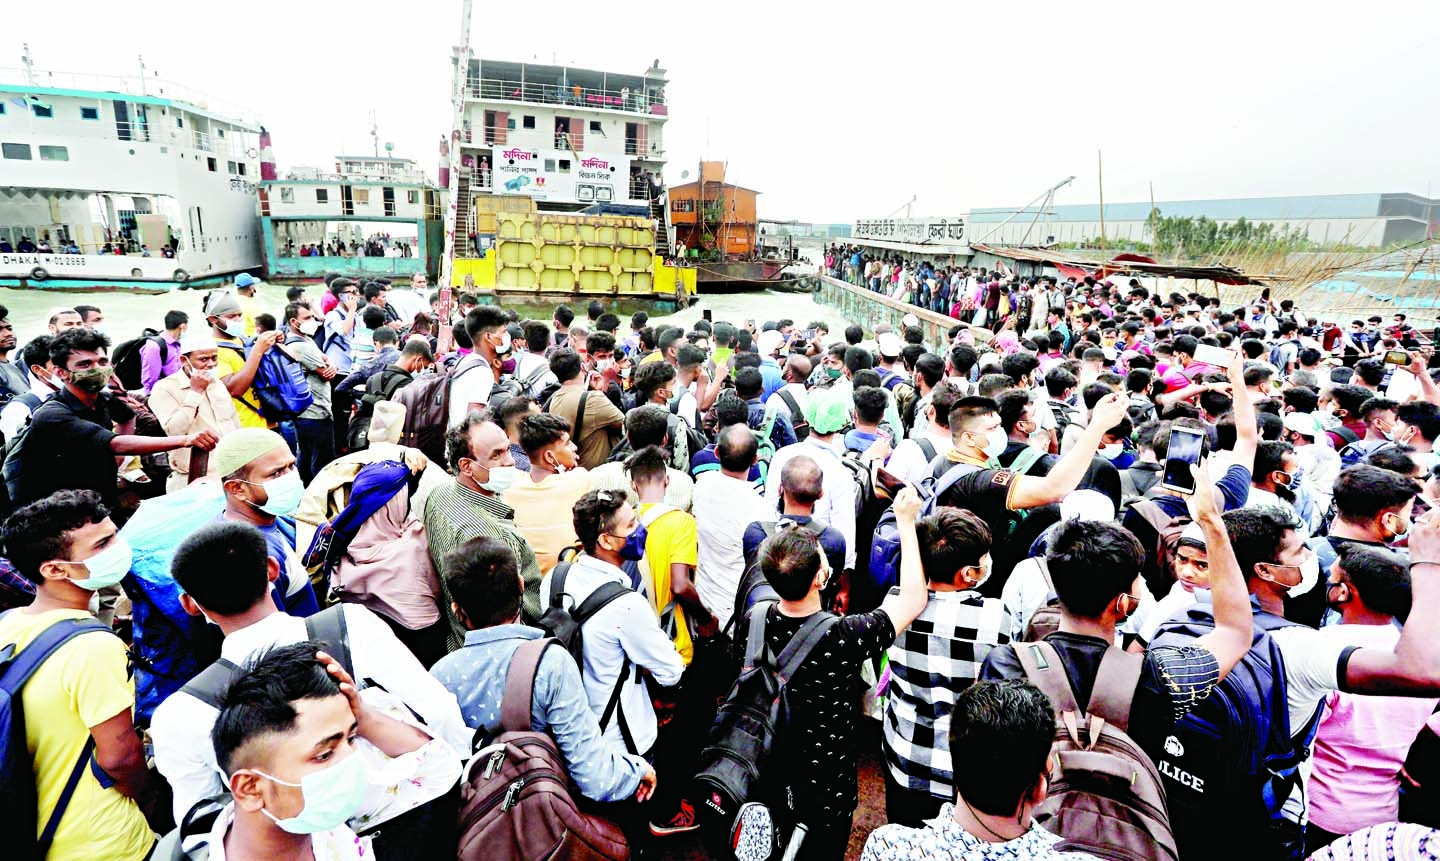 Eid home-goers flock recklessly to Munshiganj's Shimulia ferry terminal on Sunday.